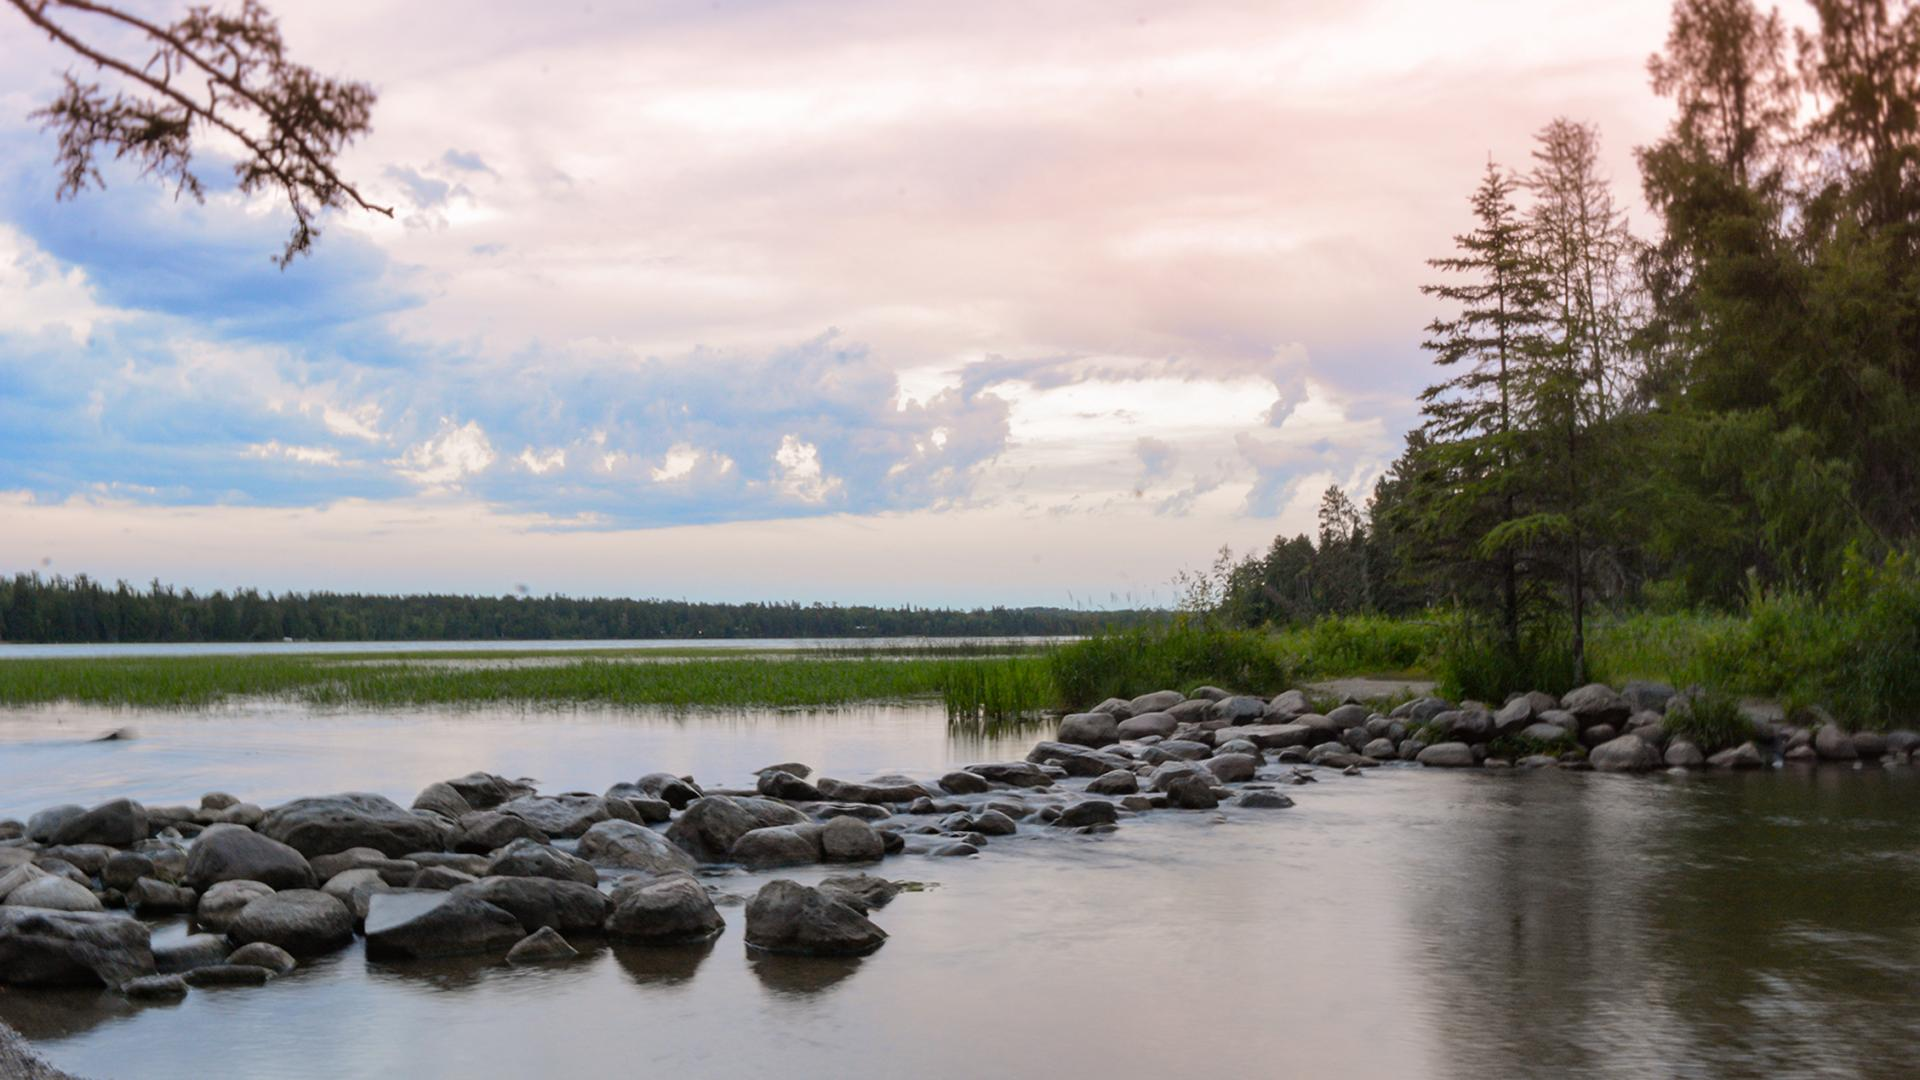 The Mississippi River headwaters under a pastel sky at Itasca State Park